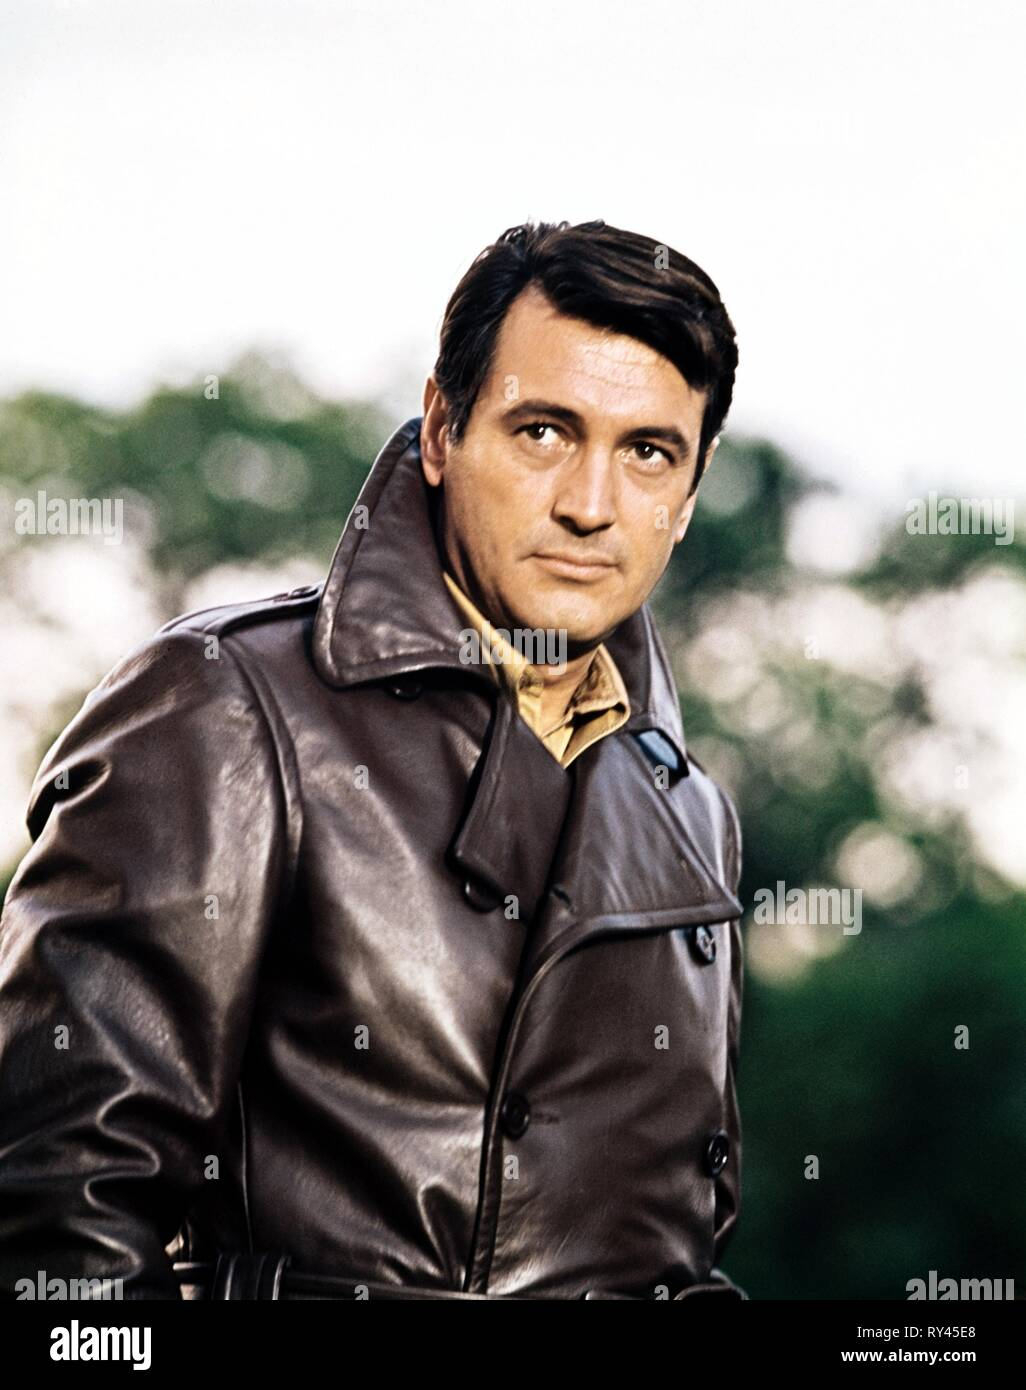 ROCK HUDSON, DARLING LILI, 1970 - Stock Image